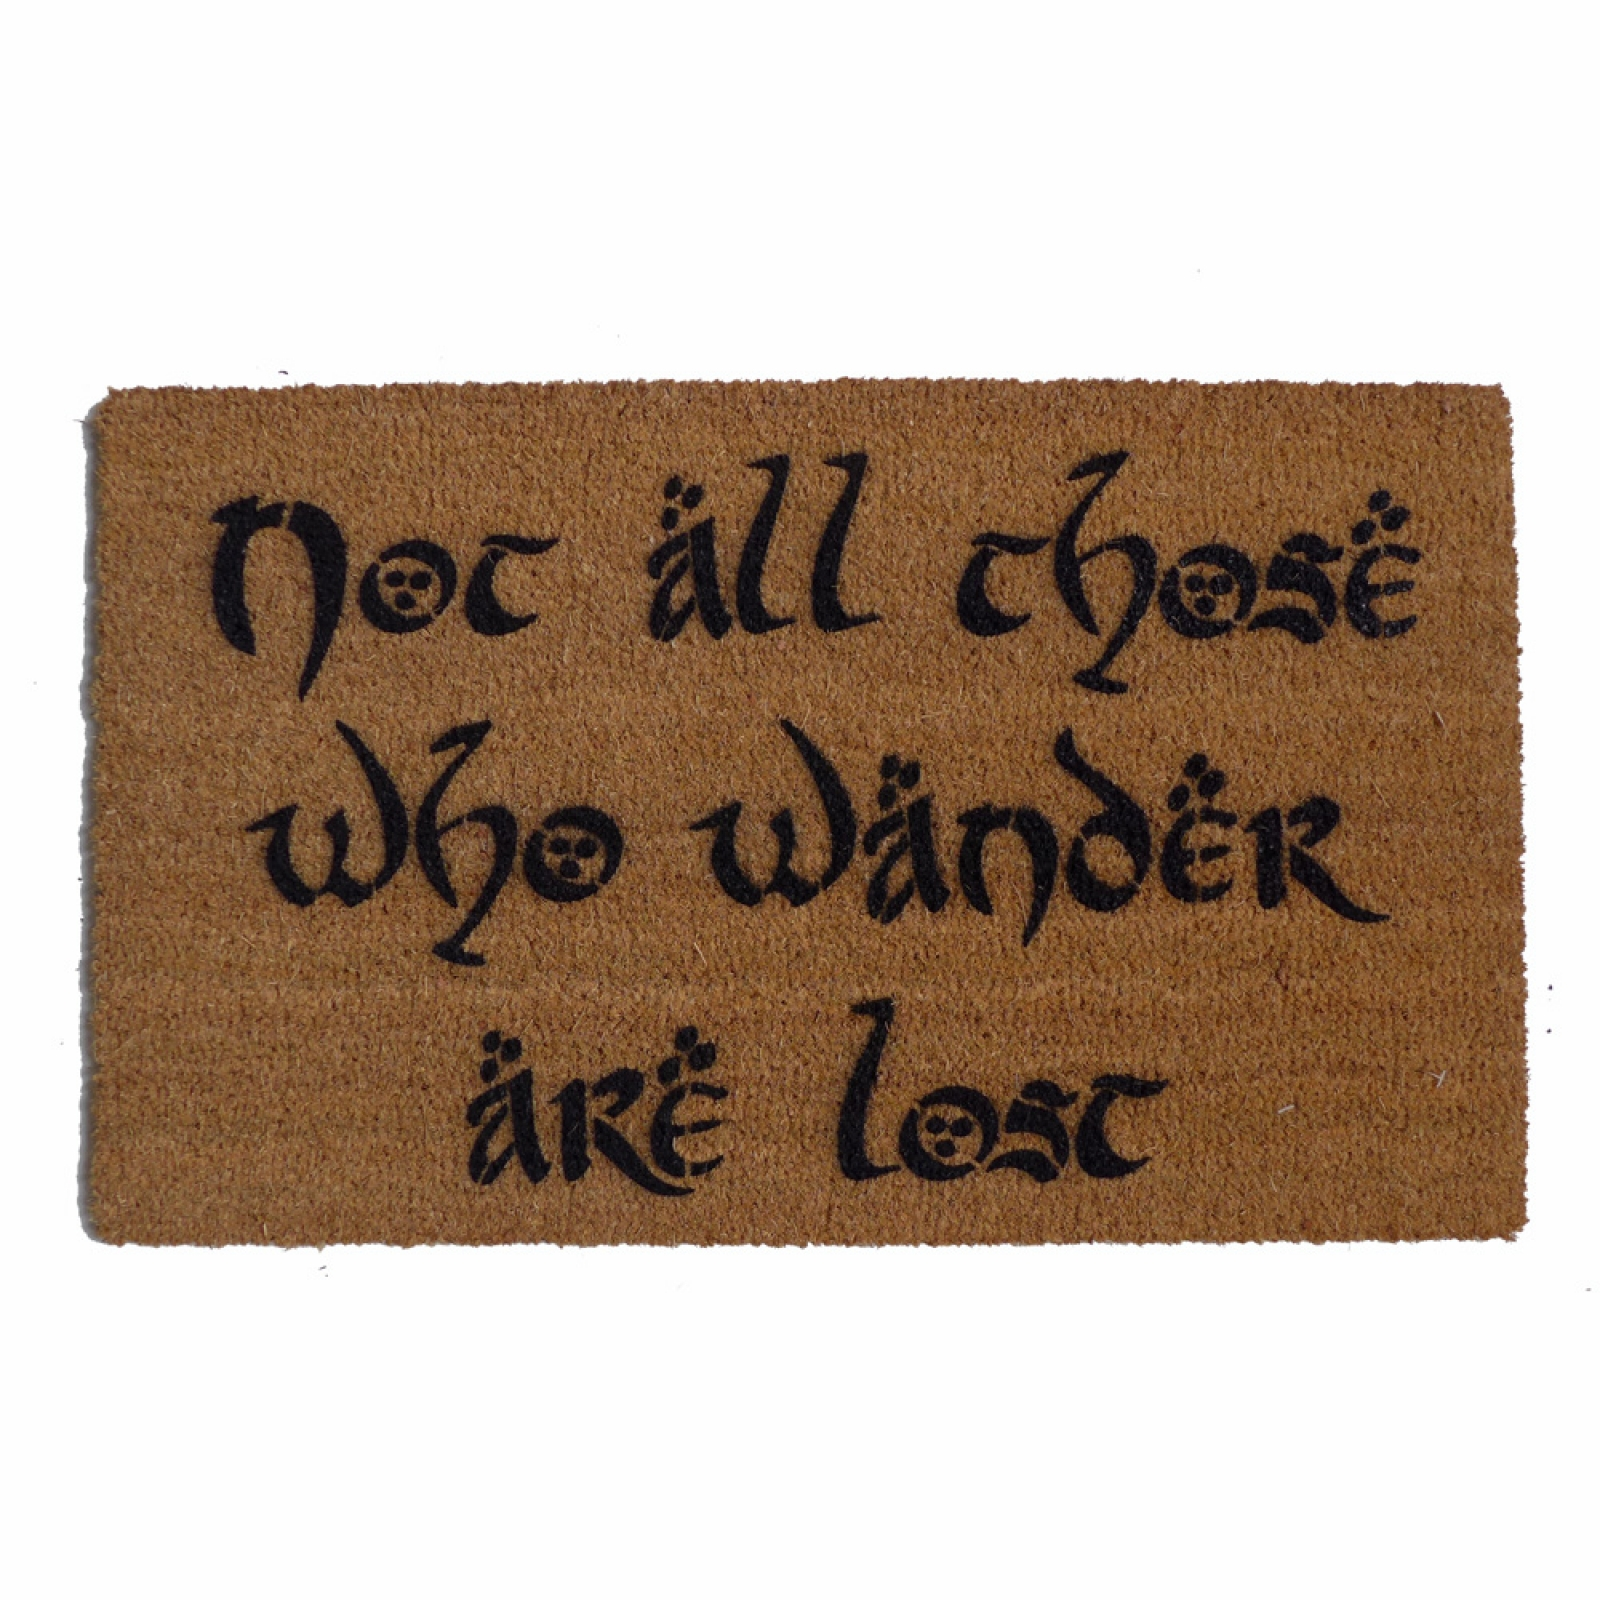 Jrr Tolkien Not All Those Who Wander Are Lost Nerd Doormat